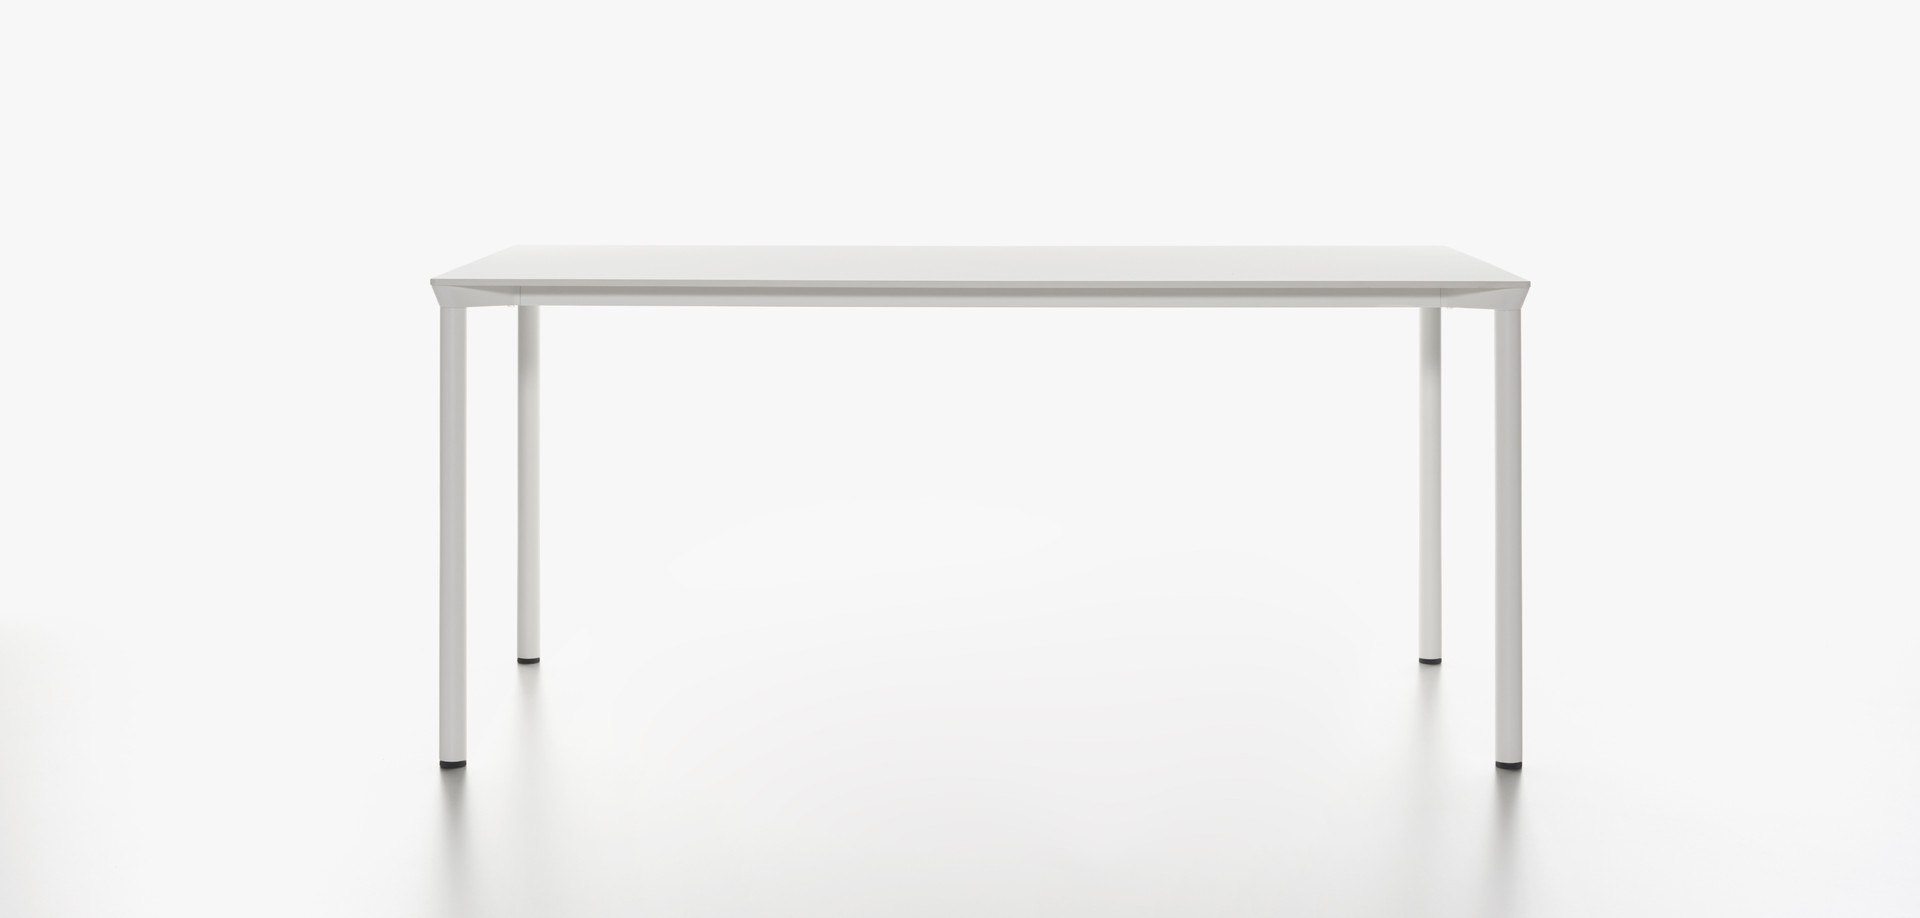 Plank - MONZA table rectangular, white HPL table top, white aluminum legs